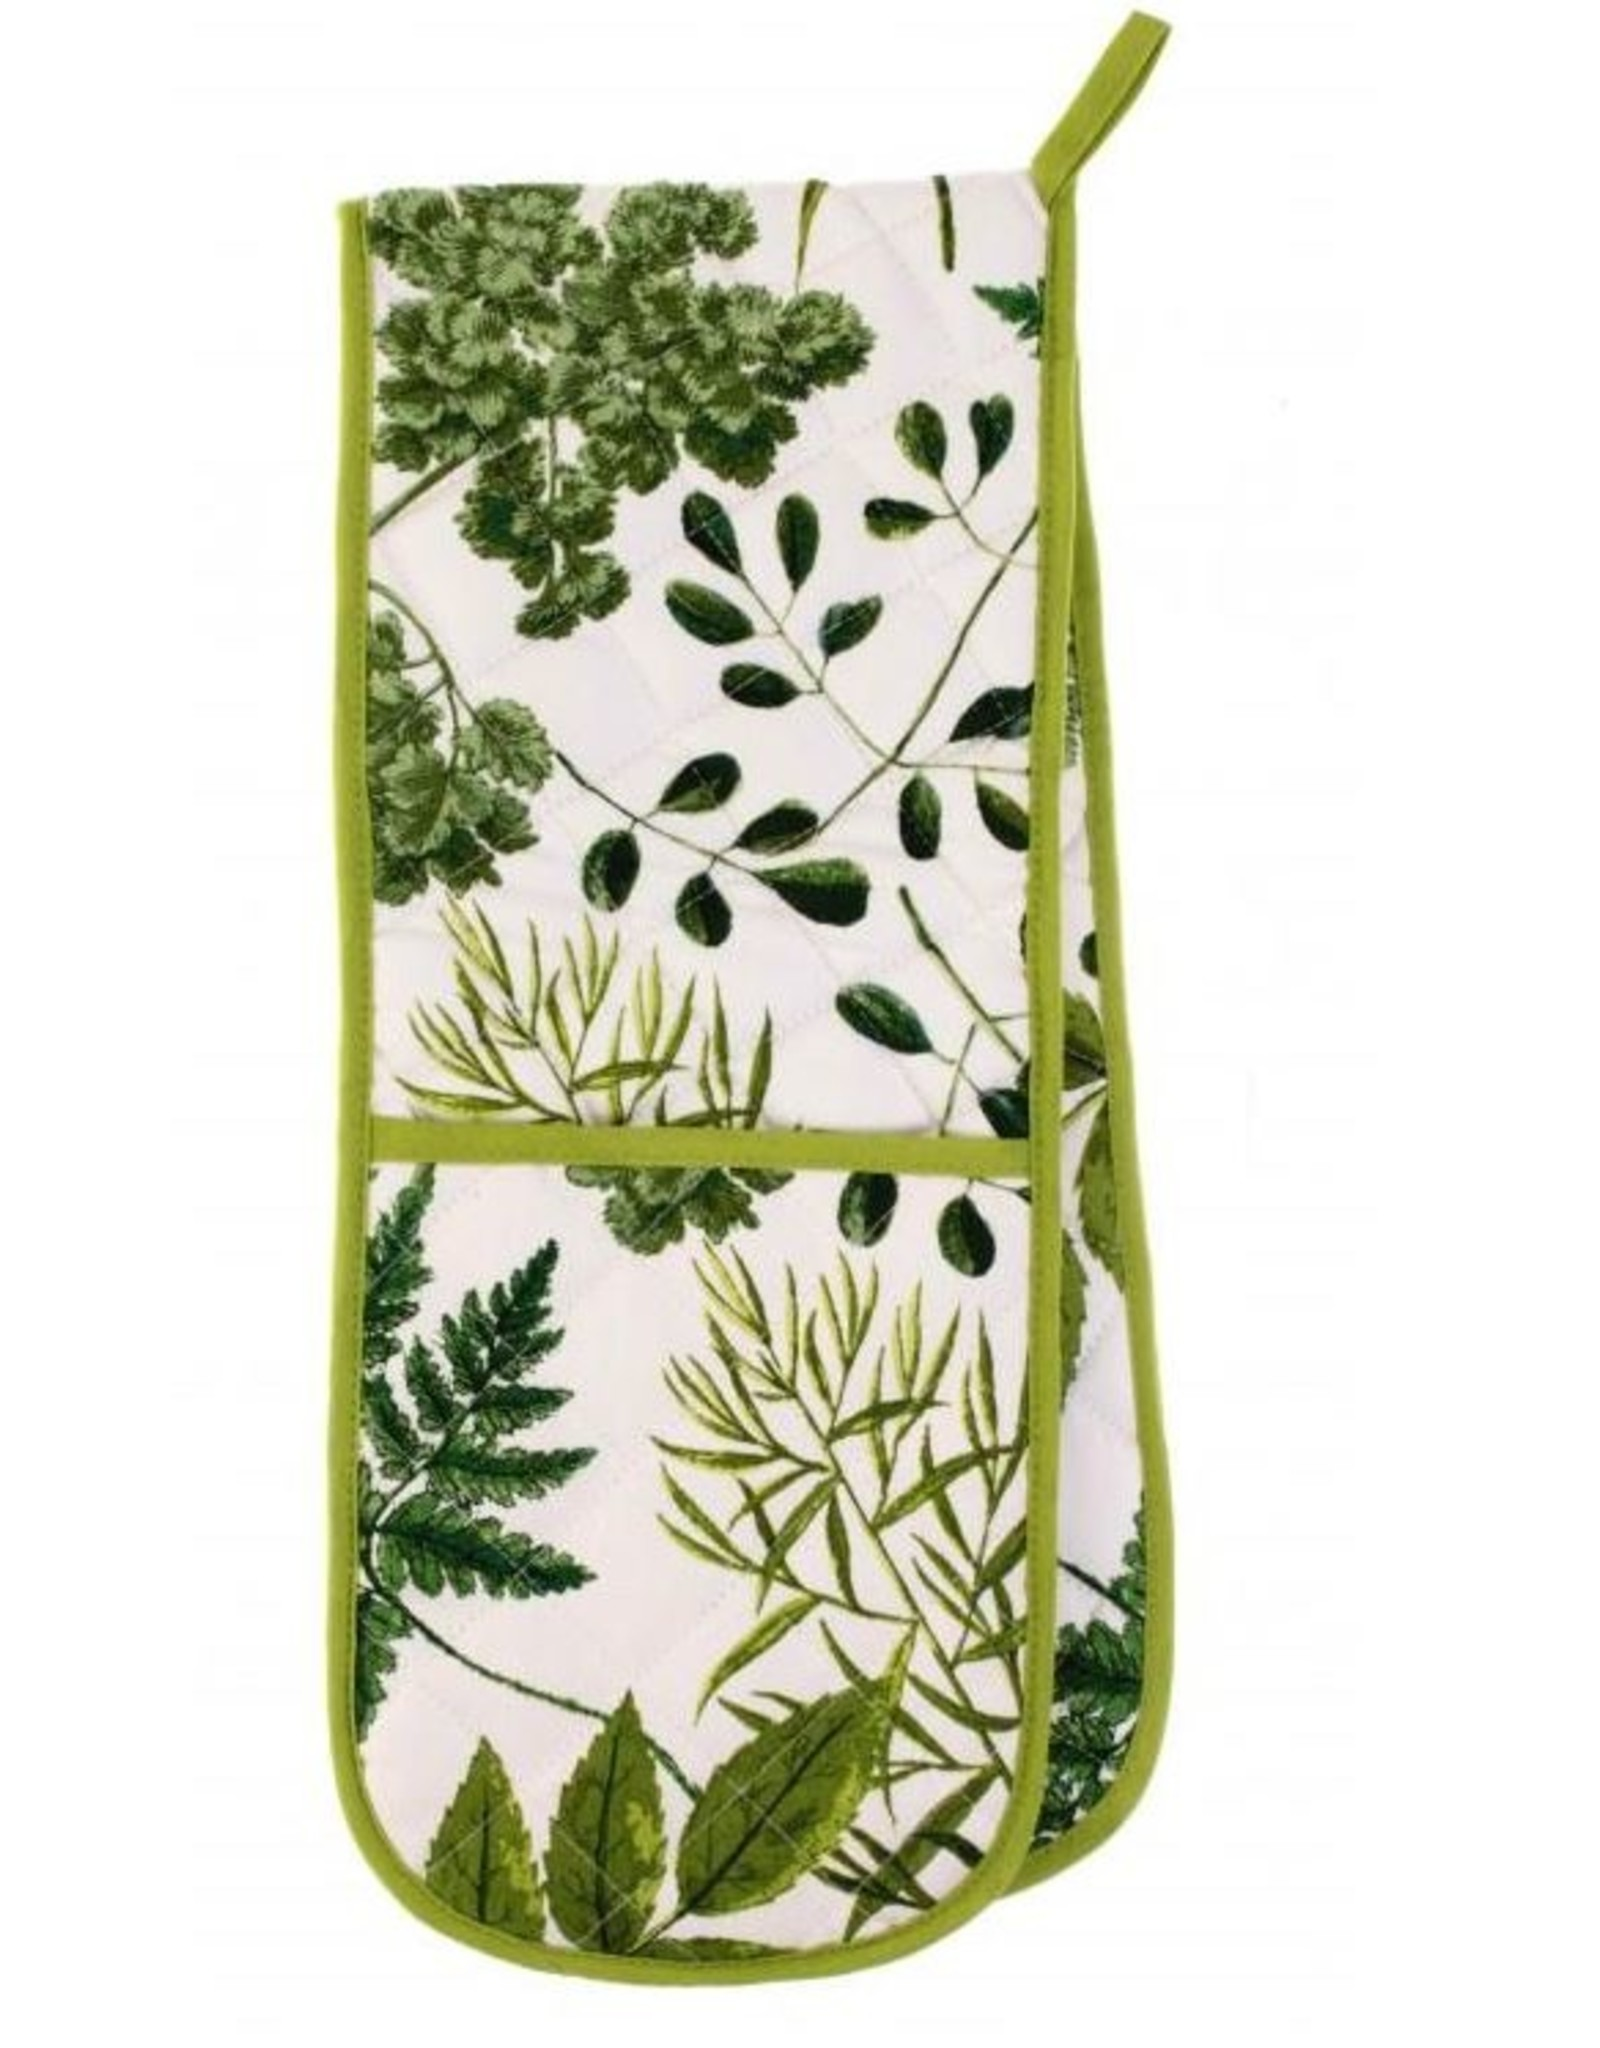 Ulster Weavers RHS Foliage Dbl Oven Glove 88x18cm